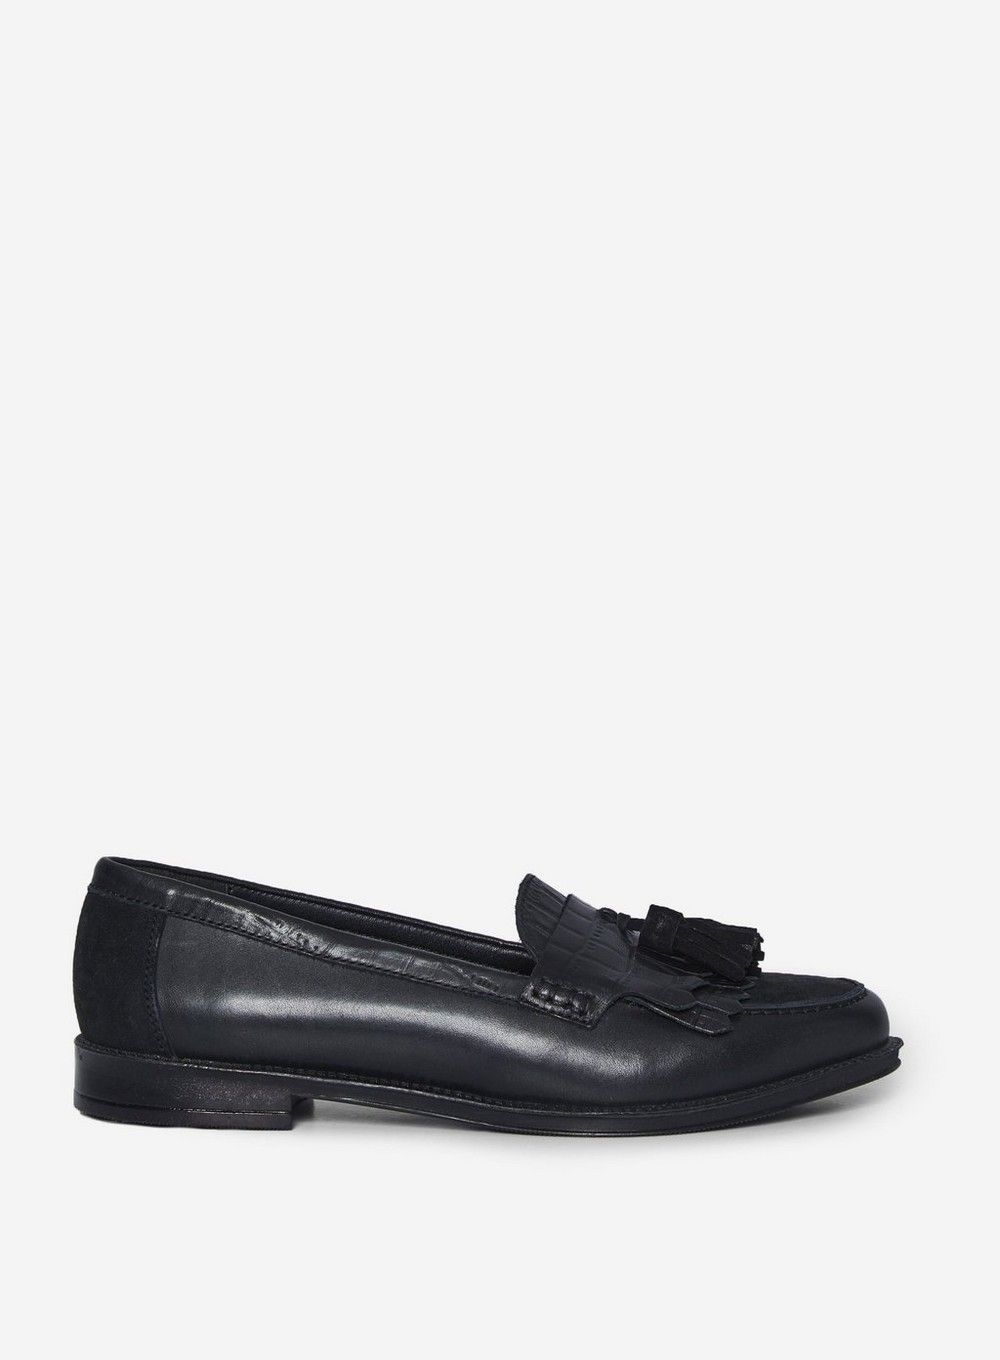 Dorothy Perkins Womens Black Luster Leather Loafers Flats Comfort Work Shoes